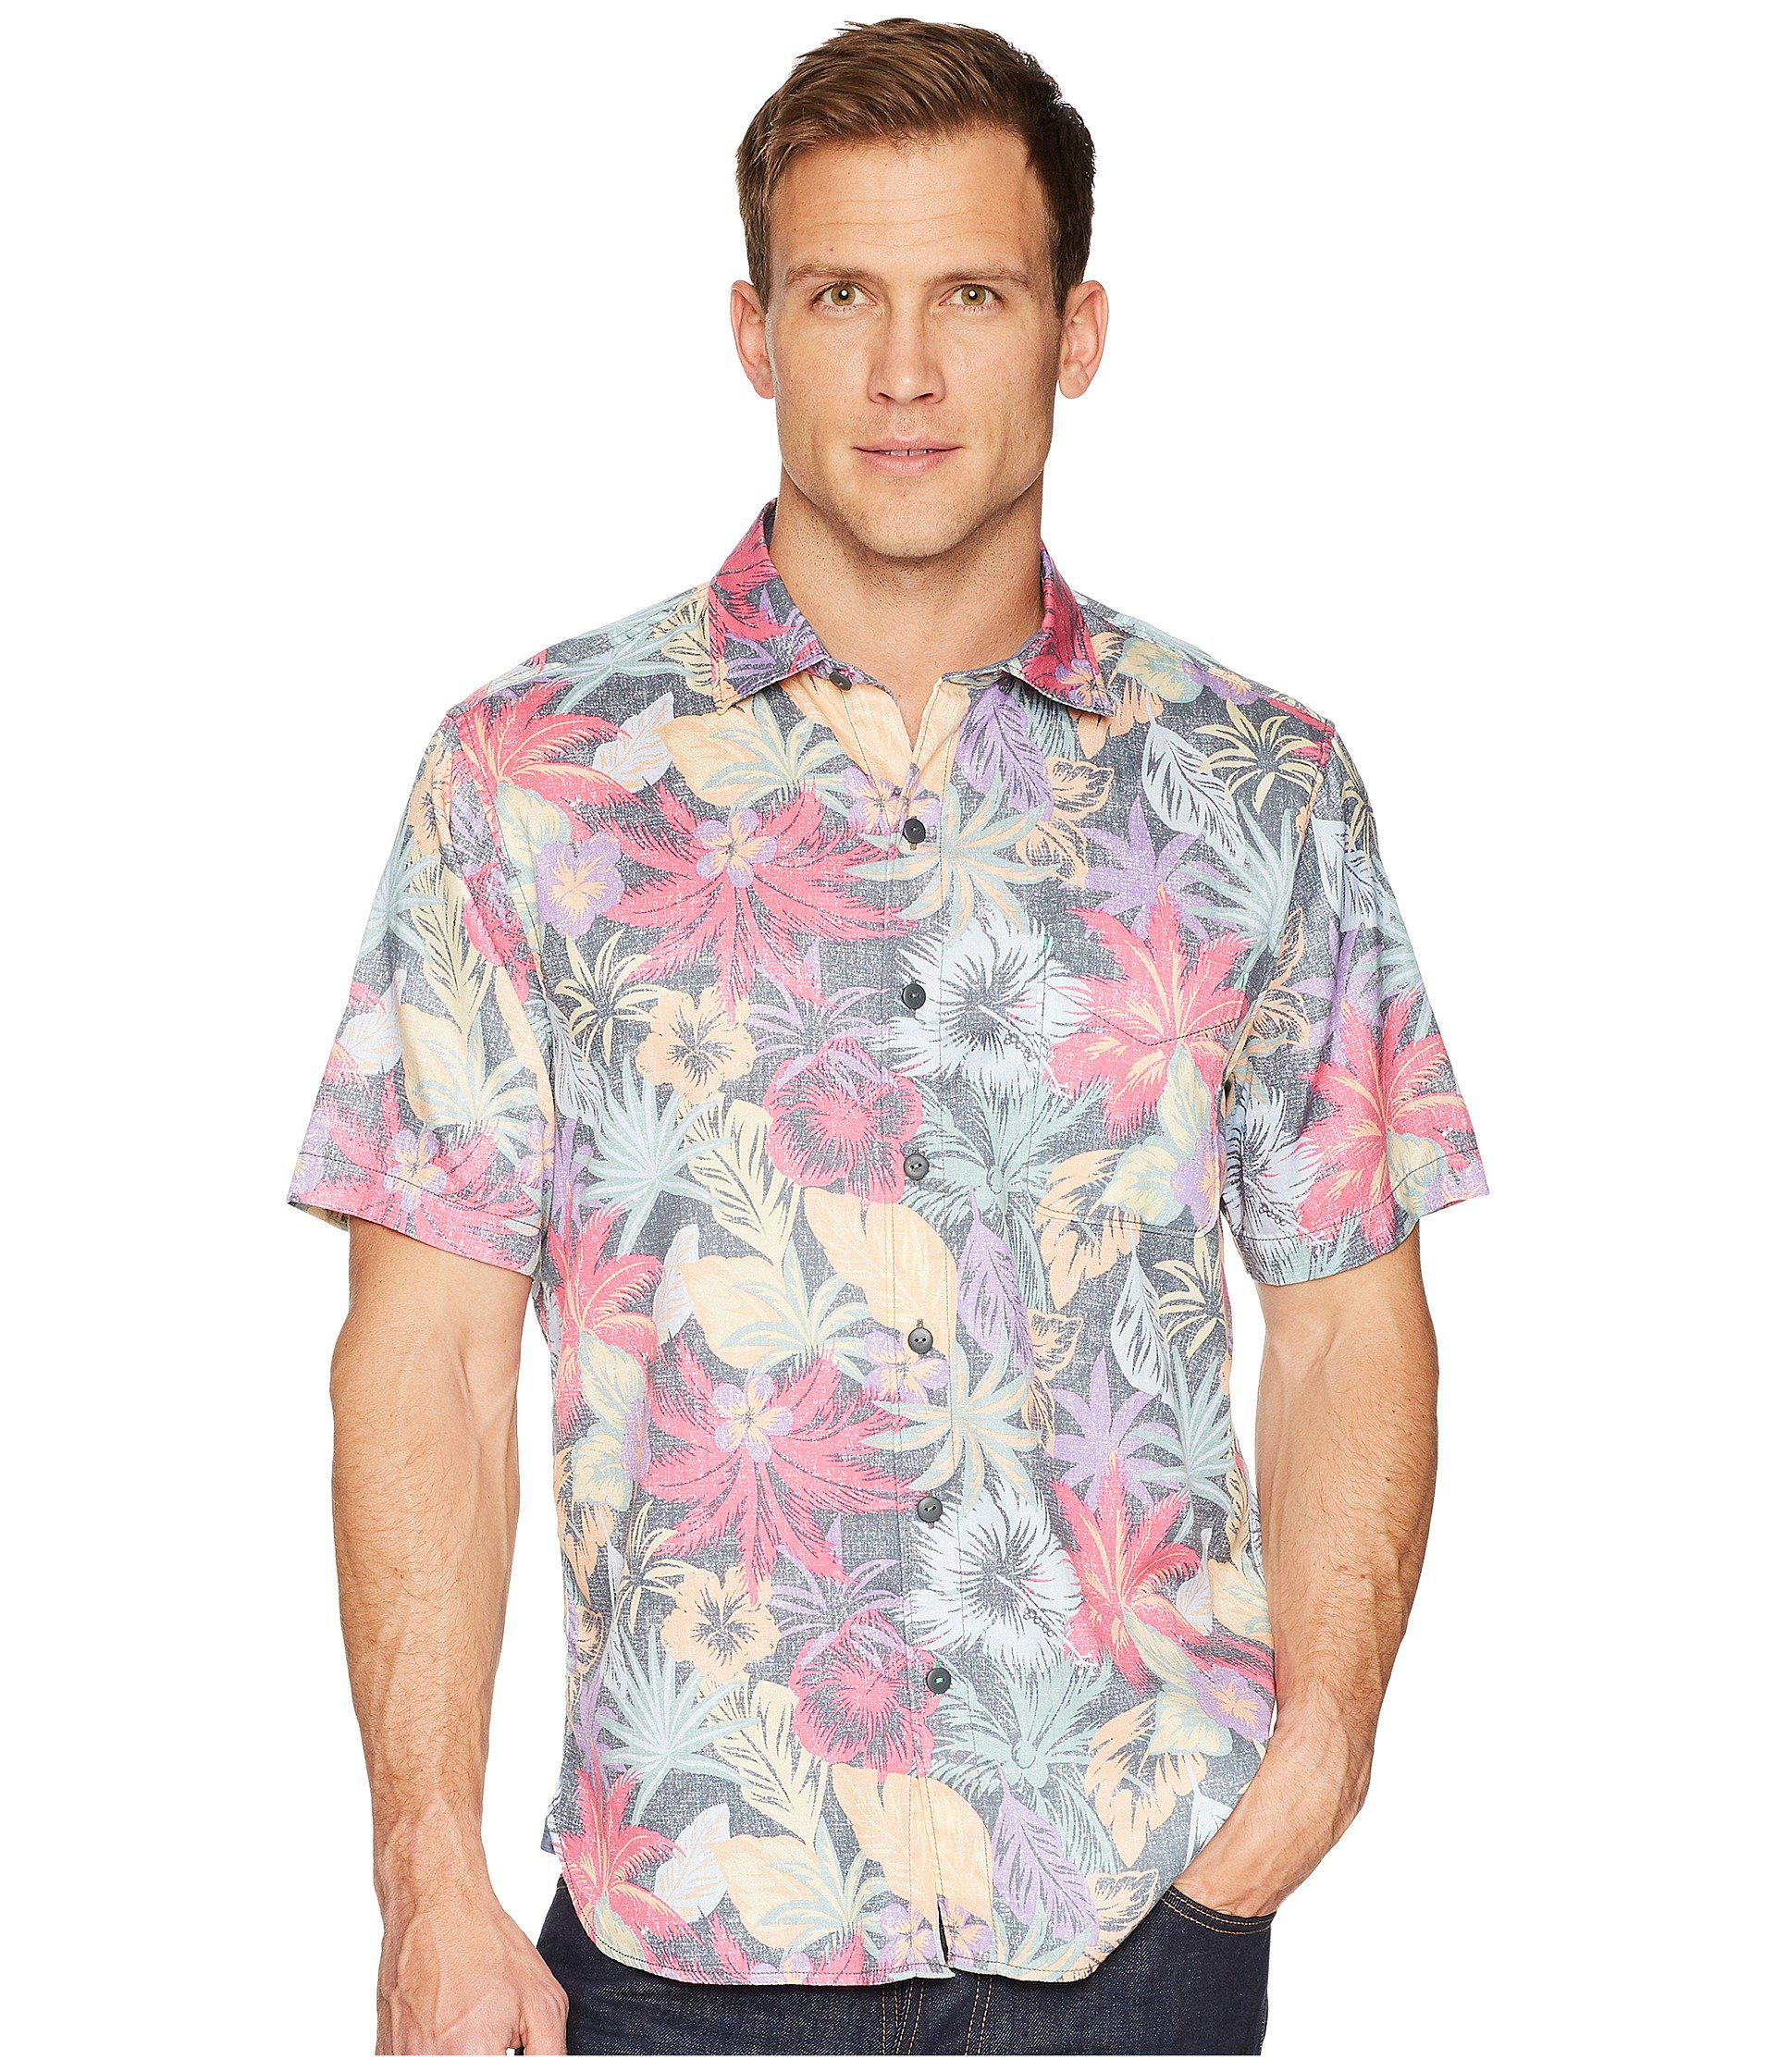 Lyst - Tommy Bahama Fuego Flora Camp Shirt in Black for Men - Save 44% bc39fb493